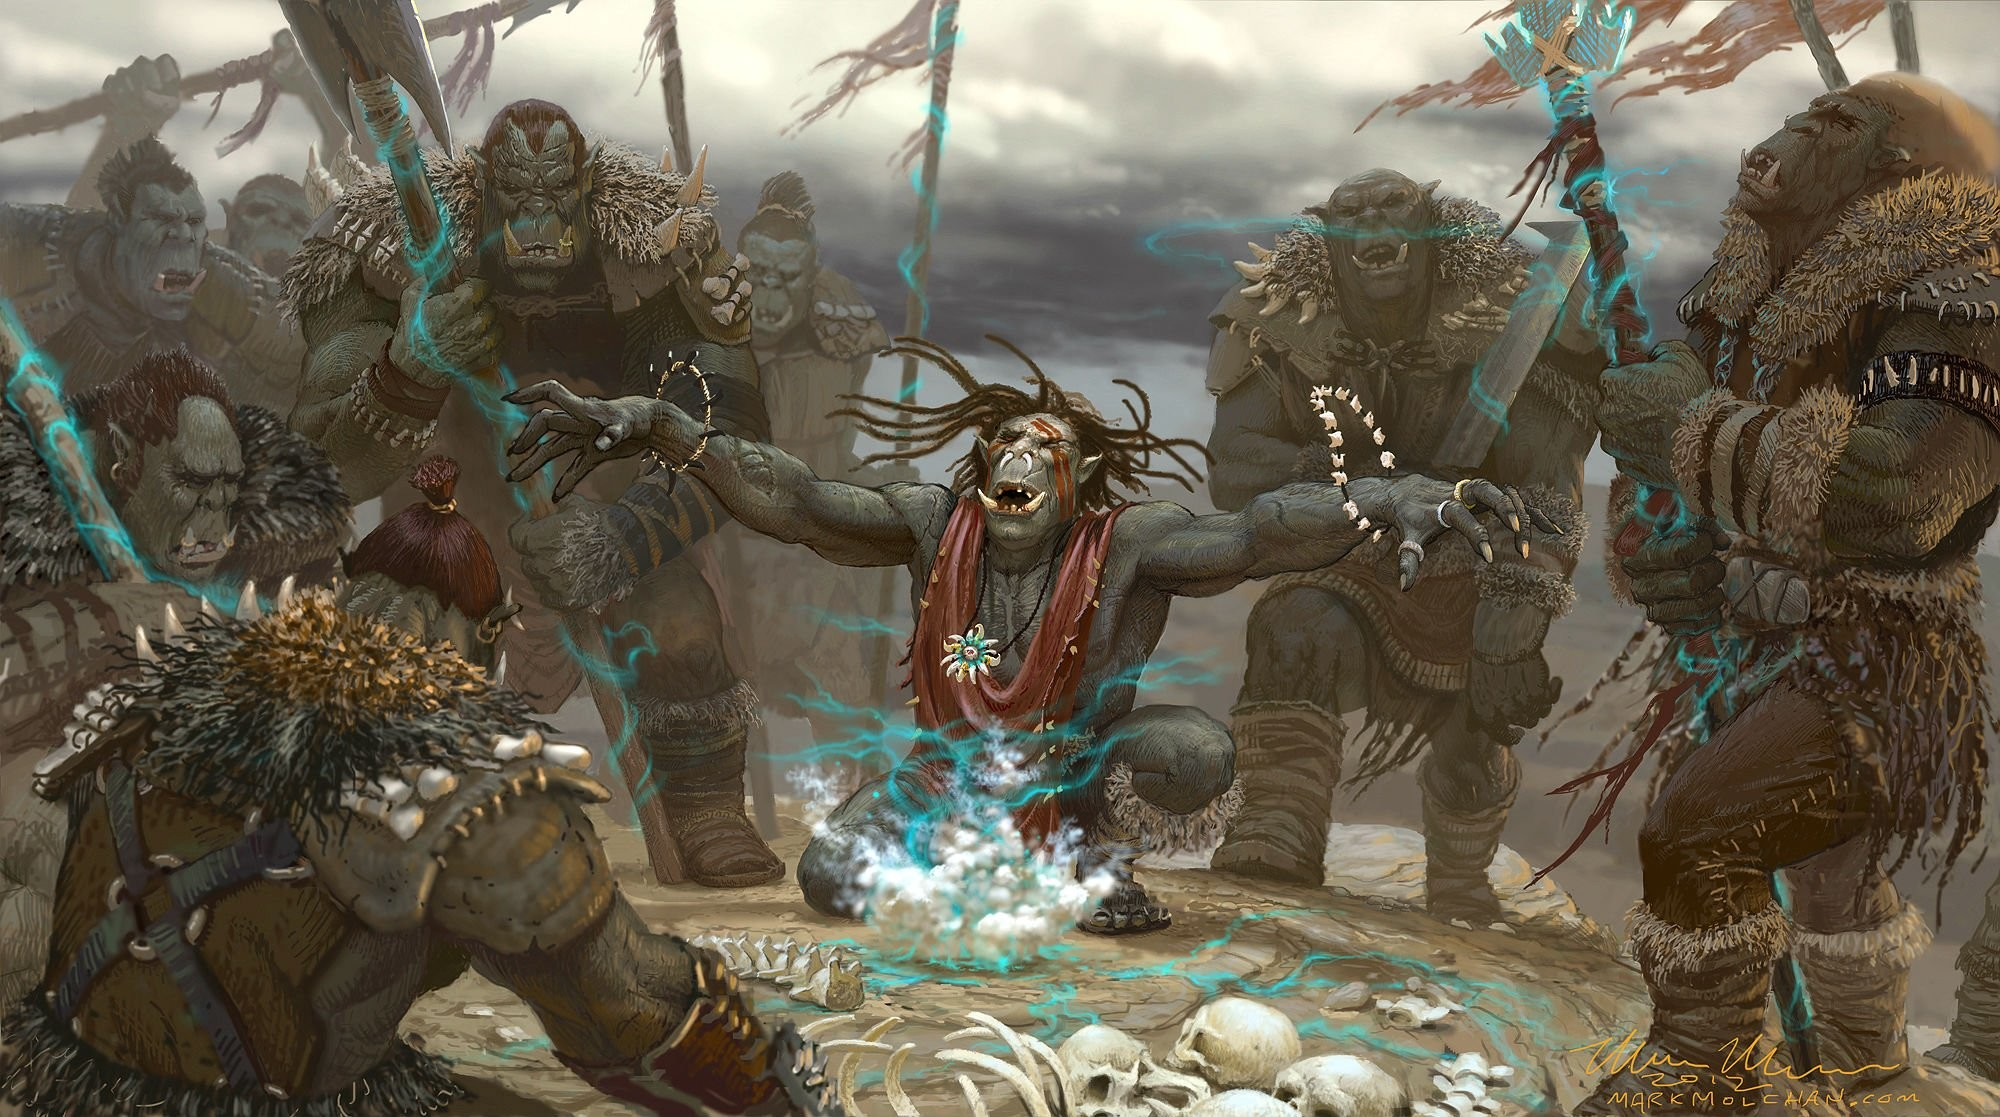 DUNGEONS DRAGONS Forgotten Realms magic rpg action adventure puzzle fantasy  warrior wallpaper | | 821087 | WallpaperUP